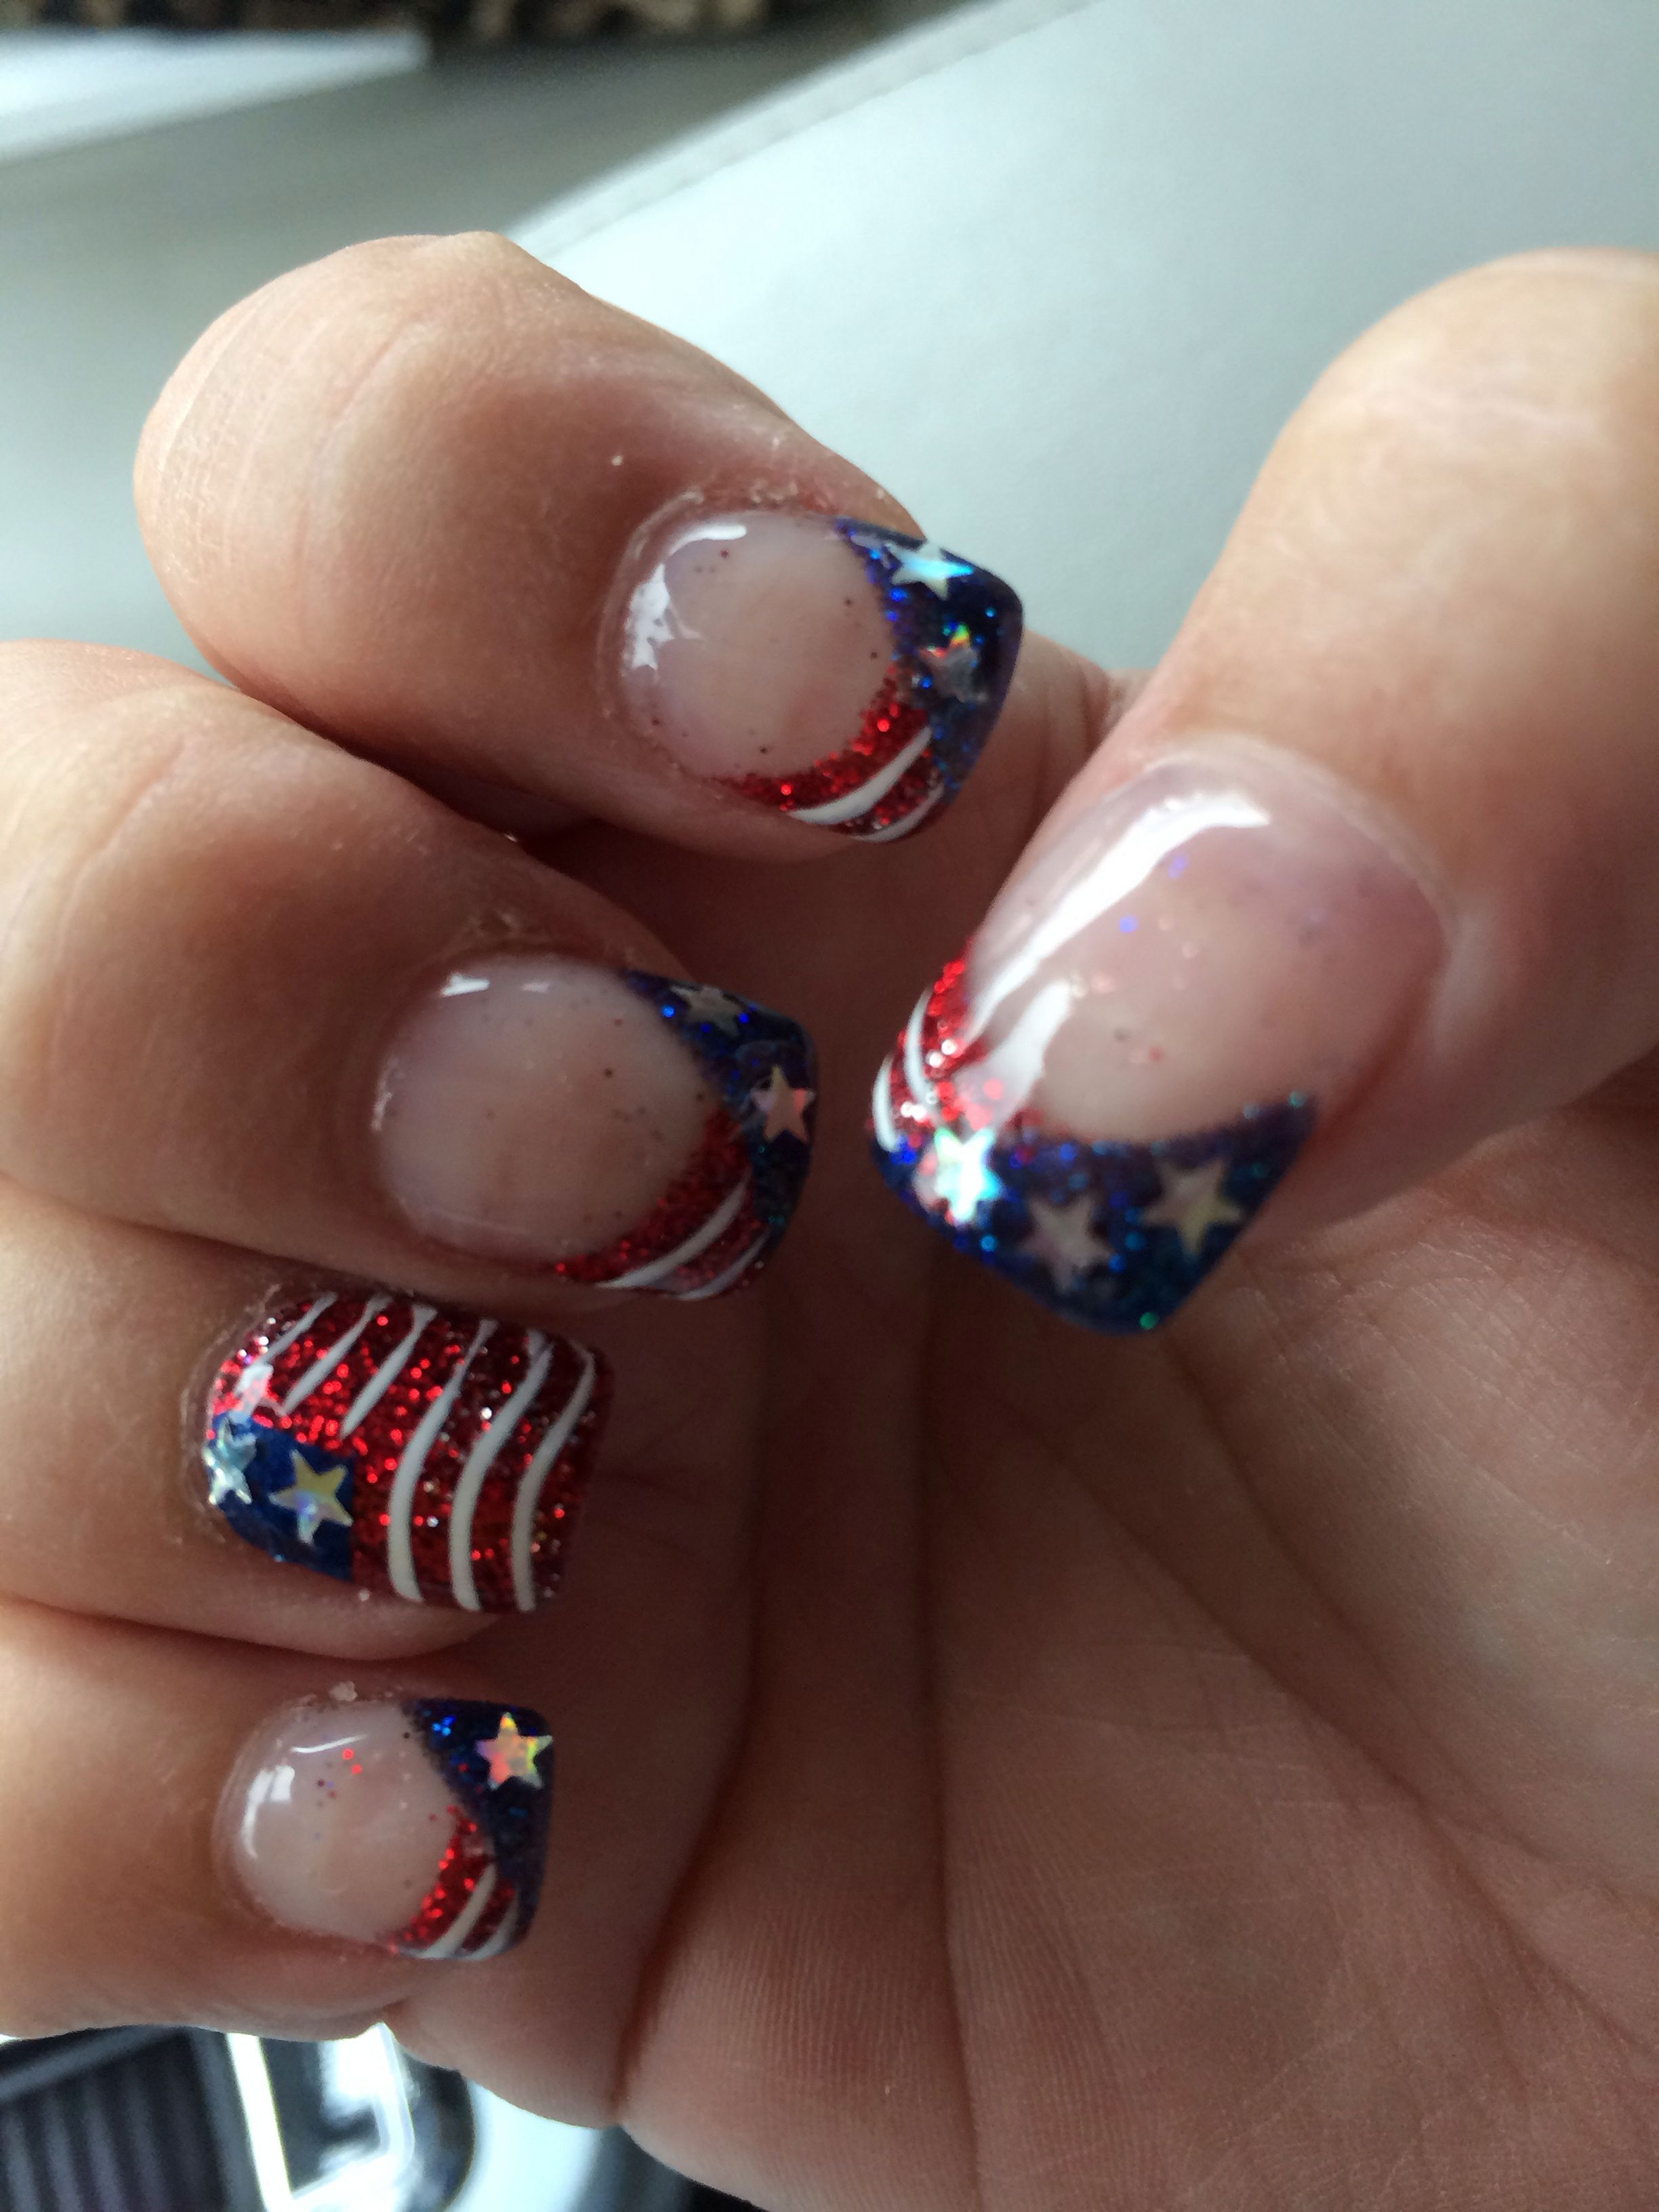 What nail style is suitable for a bright image